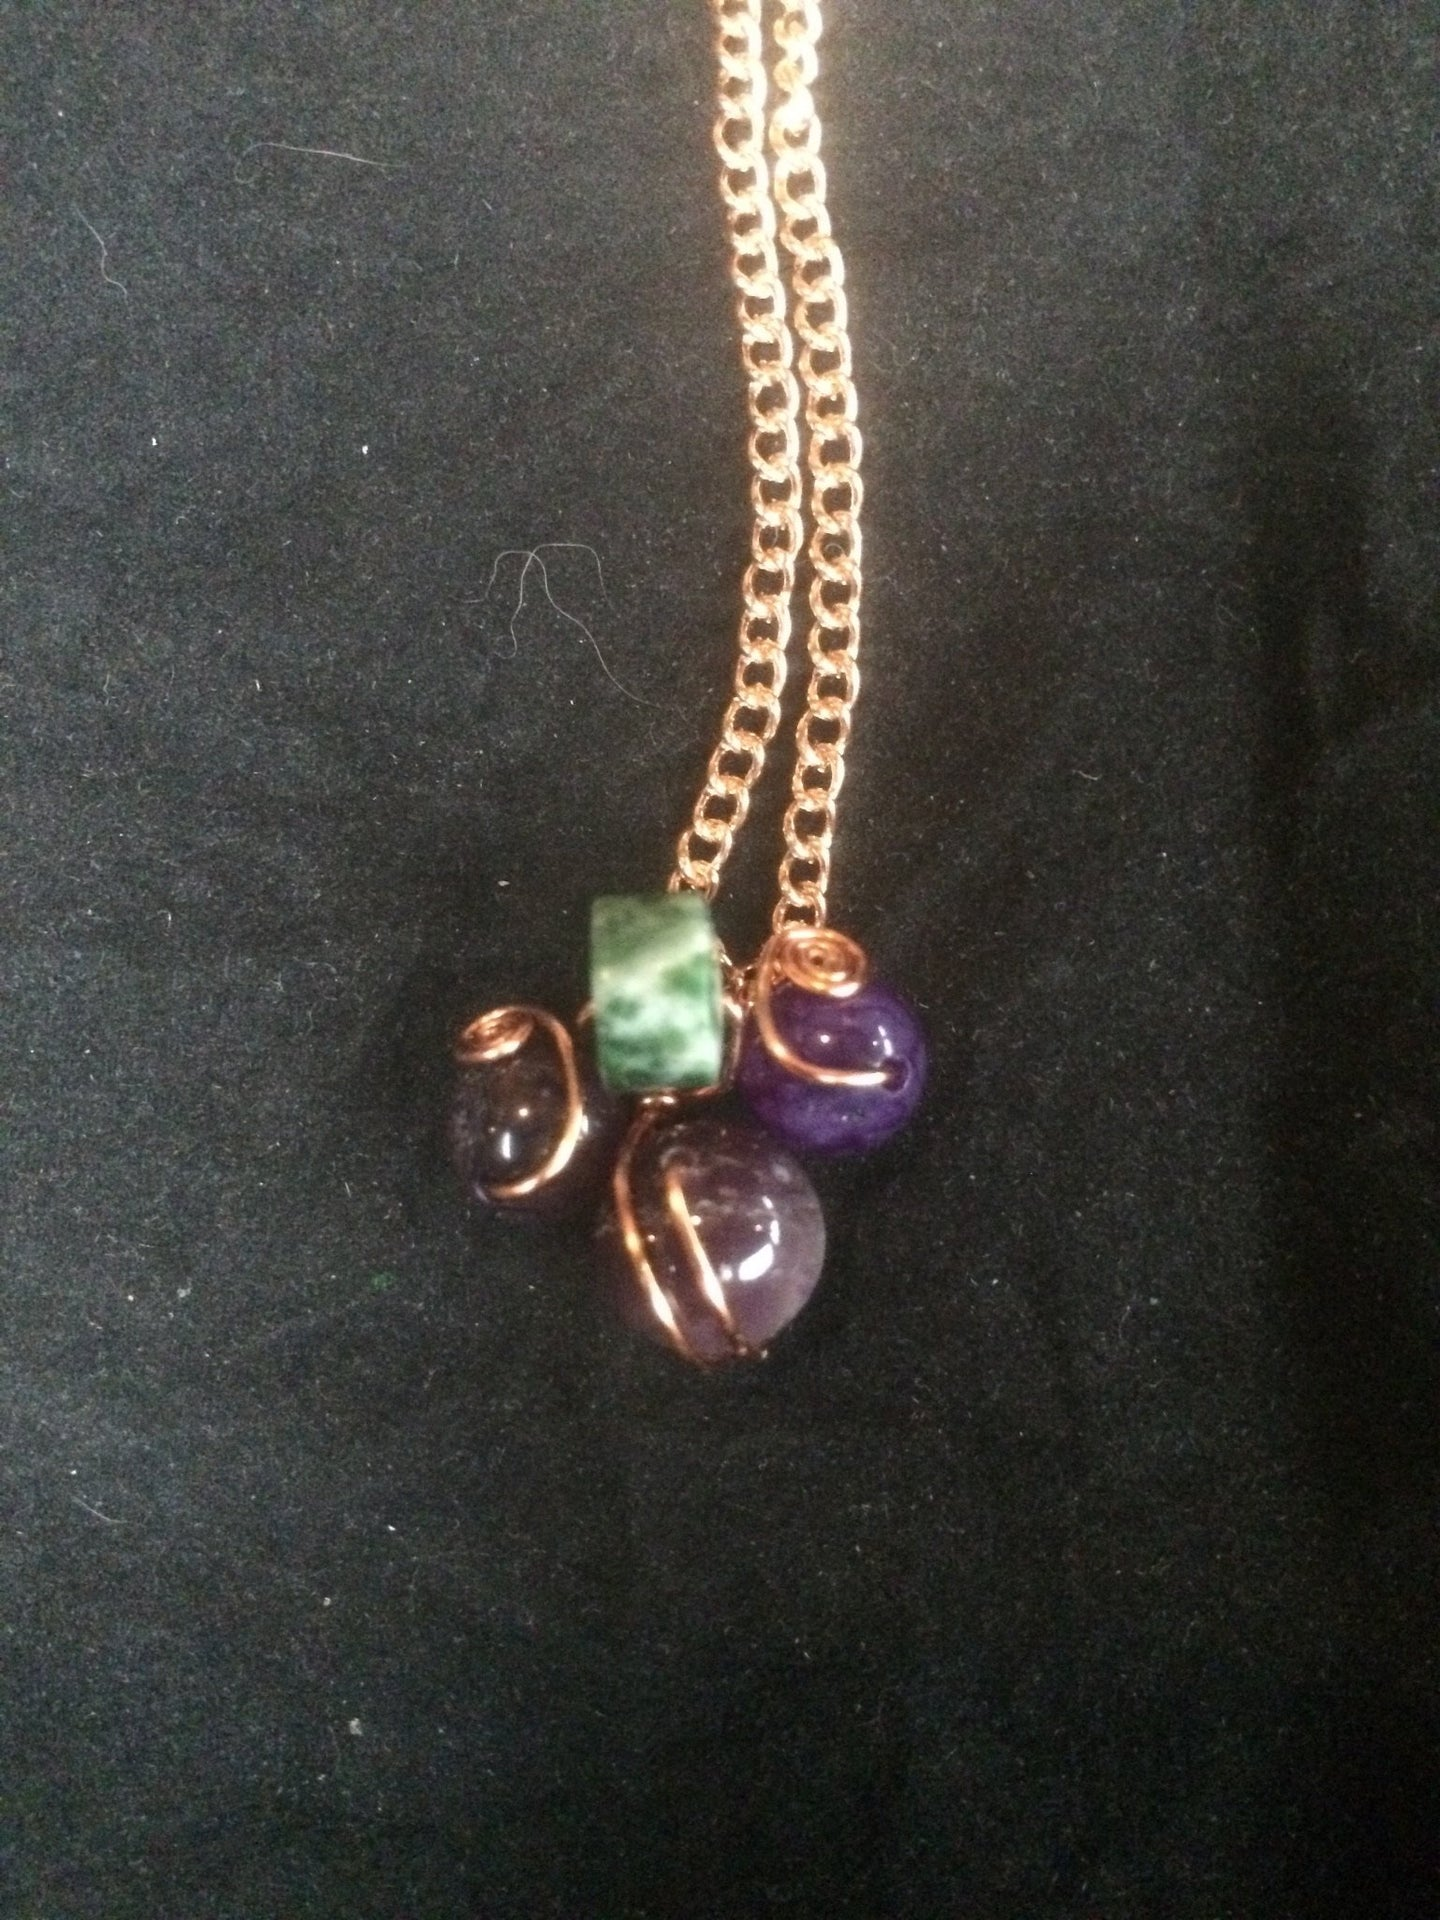 Three amethyst beads surround a green and white agate bead in a design meant to be evocative of a cluster of grapes, with the swirling copper wire wrap evoking images of the vine. The pendant is set on a 22